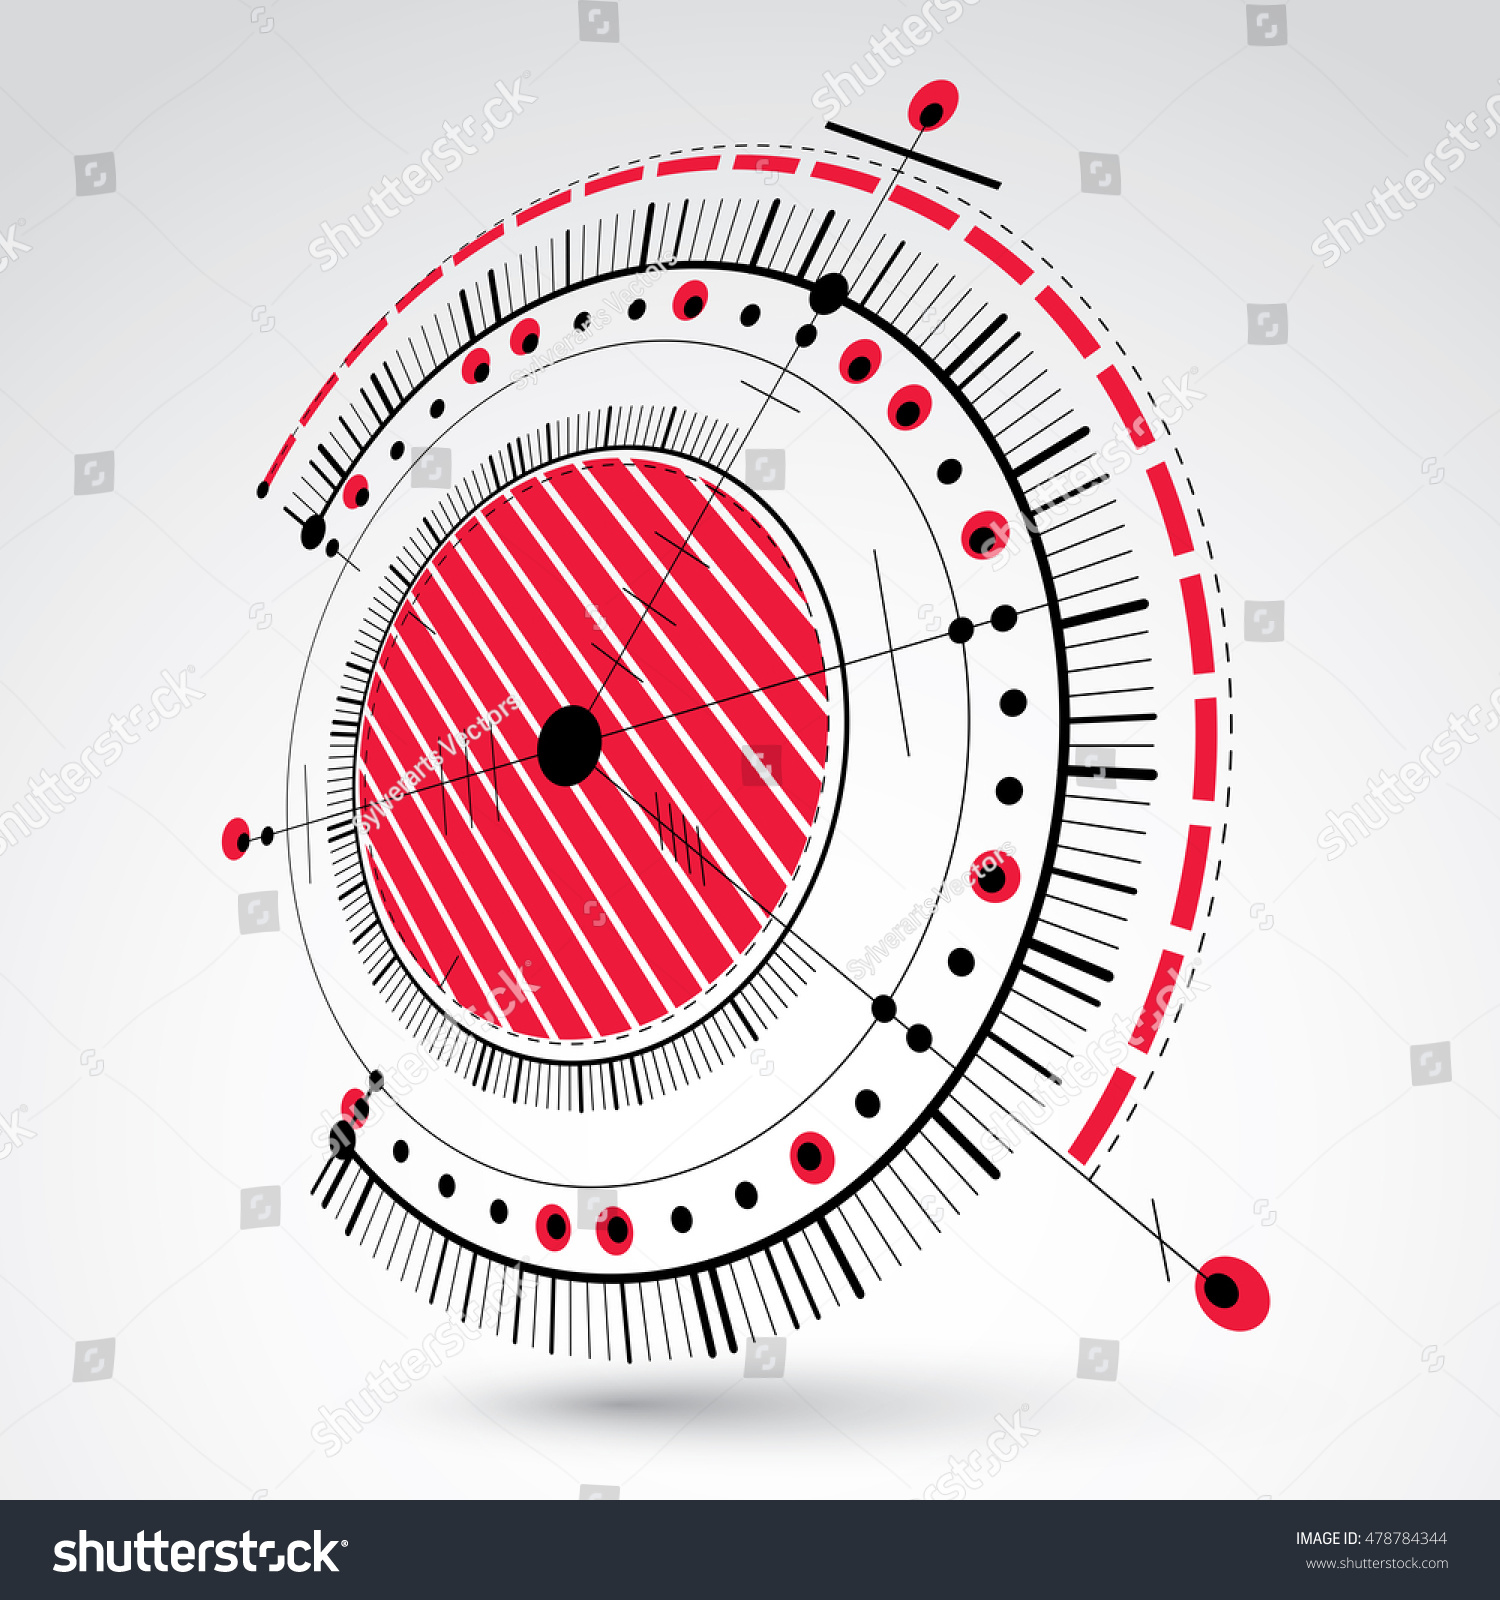 Technical blueprint red vector digital background stock vector technical blueprint red vector digital background with geometric design elements circles 3d illustration malvernweather Gallery